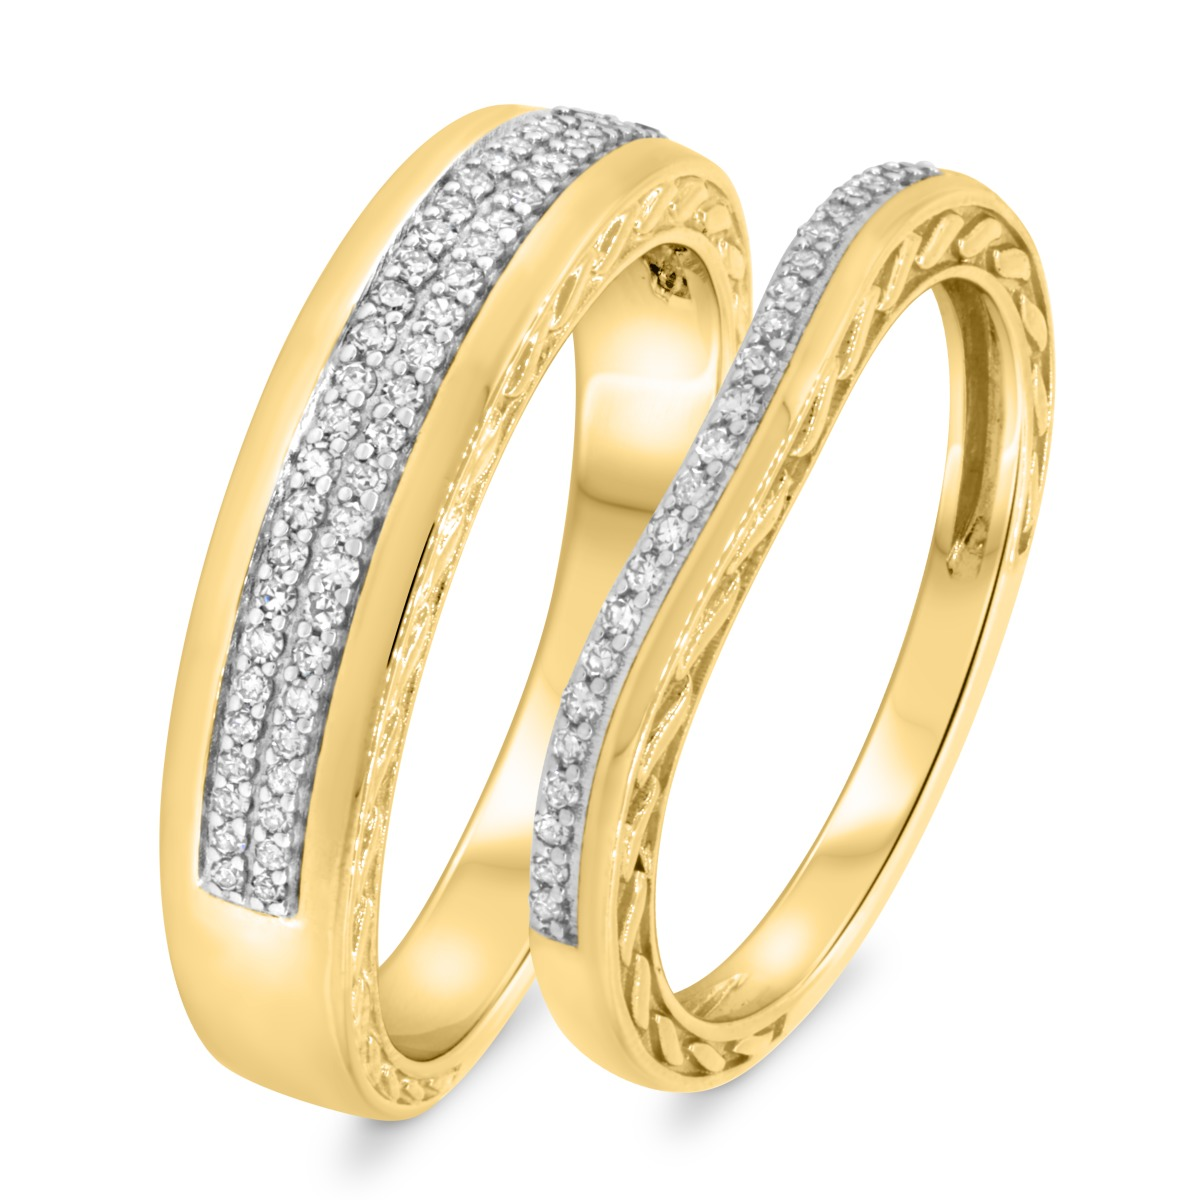 1/3 CT. T.W. Diamond Matching Wedding Band Set 10K Yellow Gold